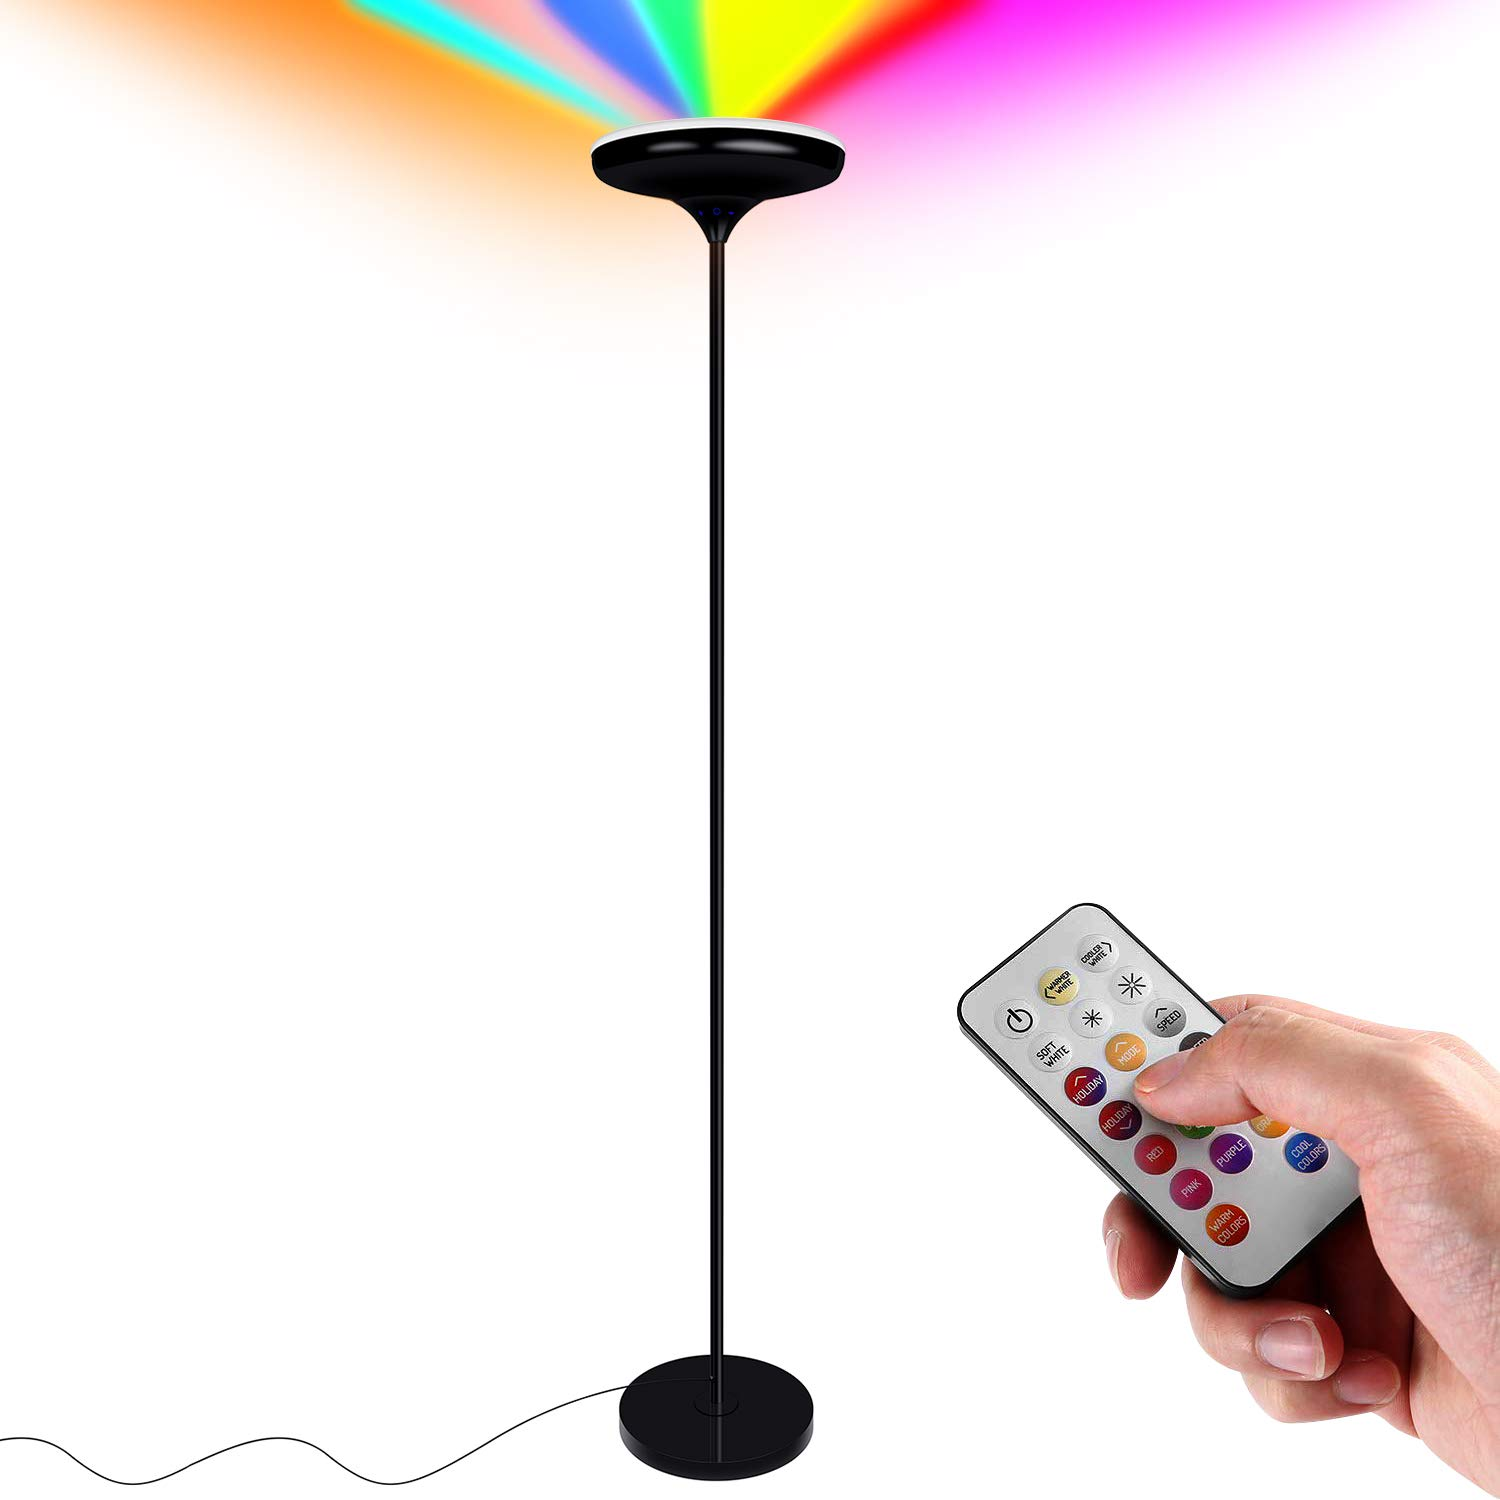 Details About 67 24w Dimmable Color Changing Led Floor Lamp With Remote Control For Bedroom